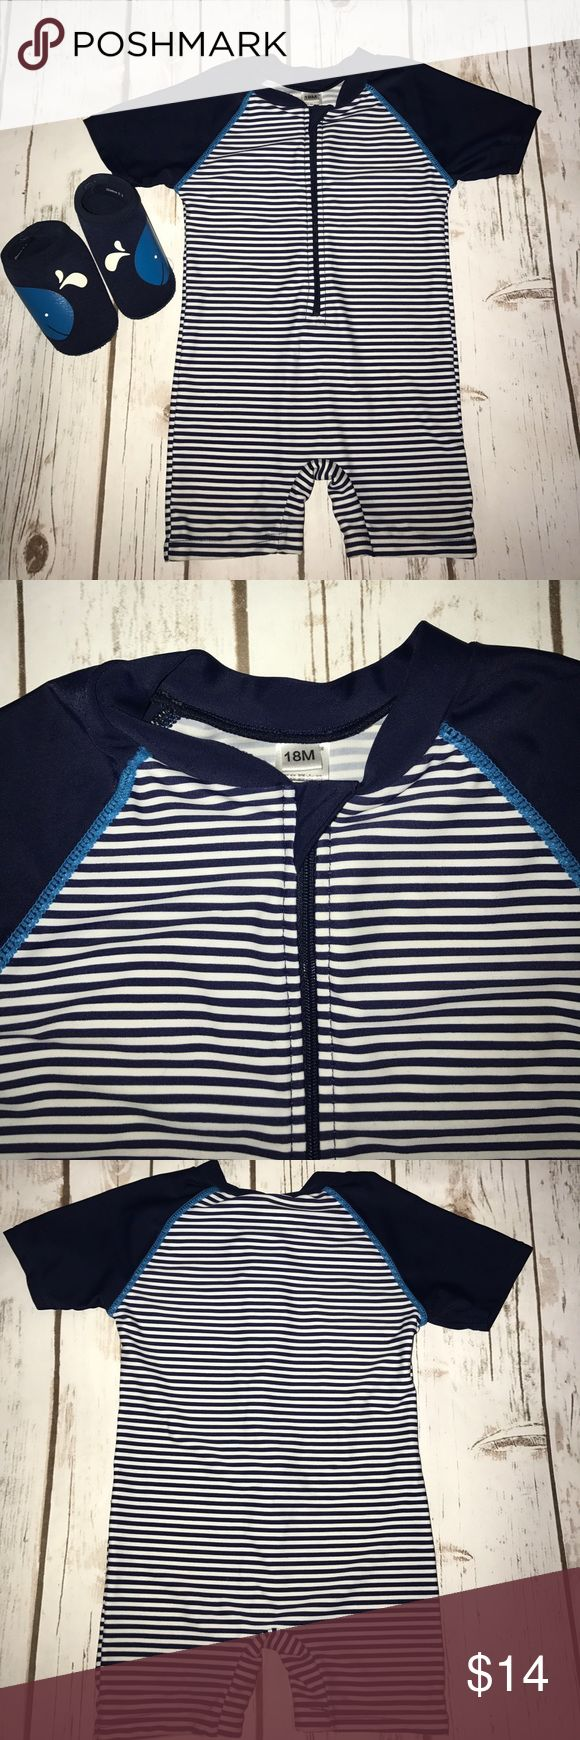 """Kids One Piece Swearwear Rash Guard EUC. Zipper closure at top. Navy blue and white stripes. Says """"18 months"""" on tag but fit my son well at 12 months IMO. When I ordered this online I selected """"12-18 months"""" and this is what was sent to me. Water shoes not included but do have a separate listing 😃 smoke free home. Swim Rashguards"""